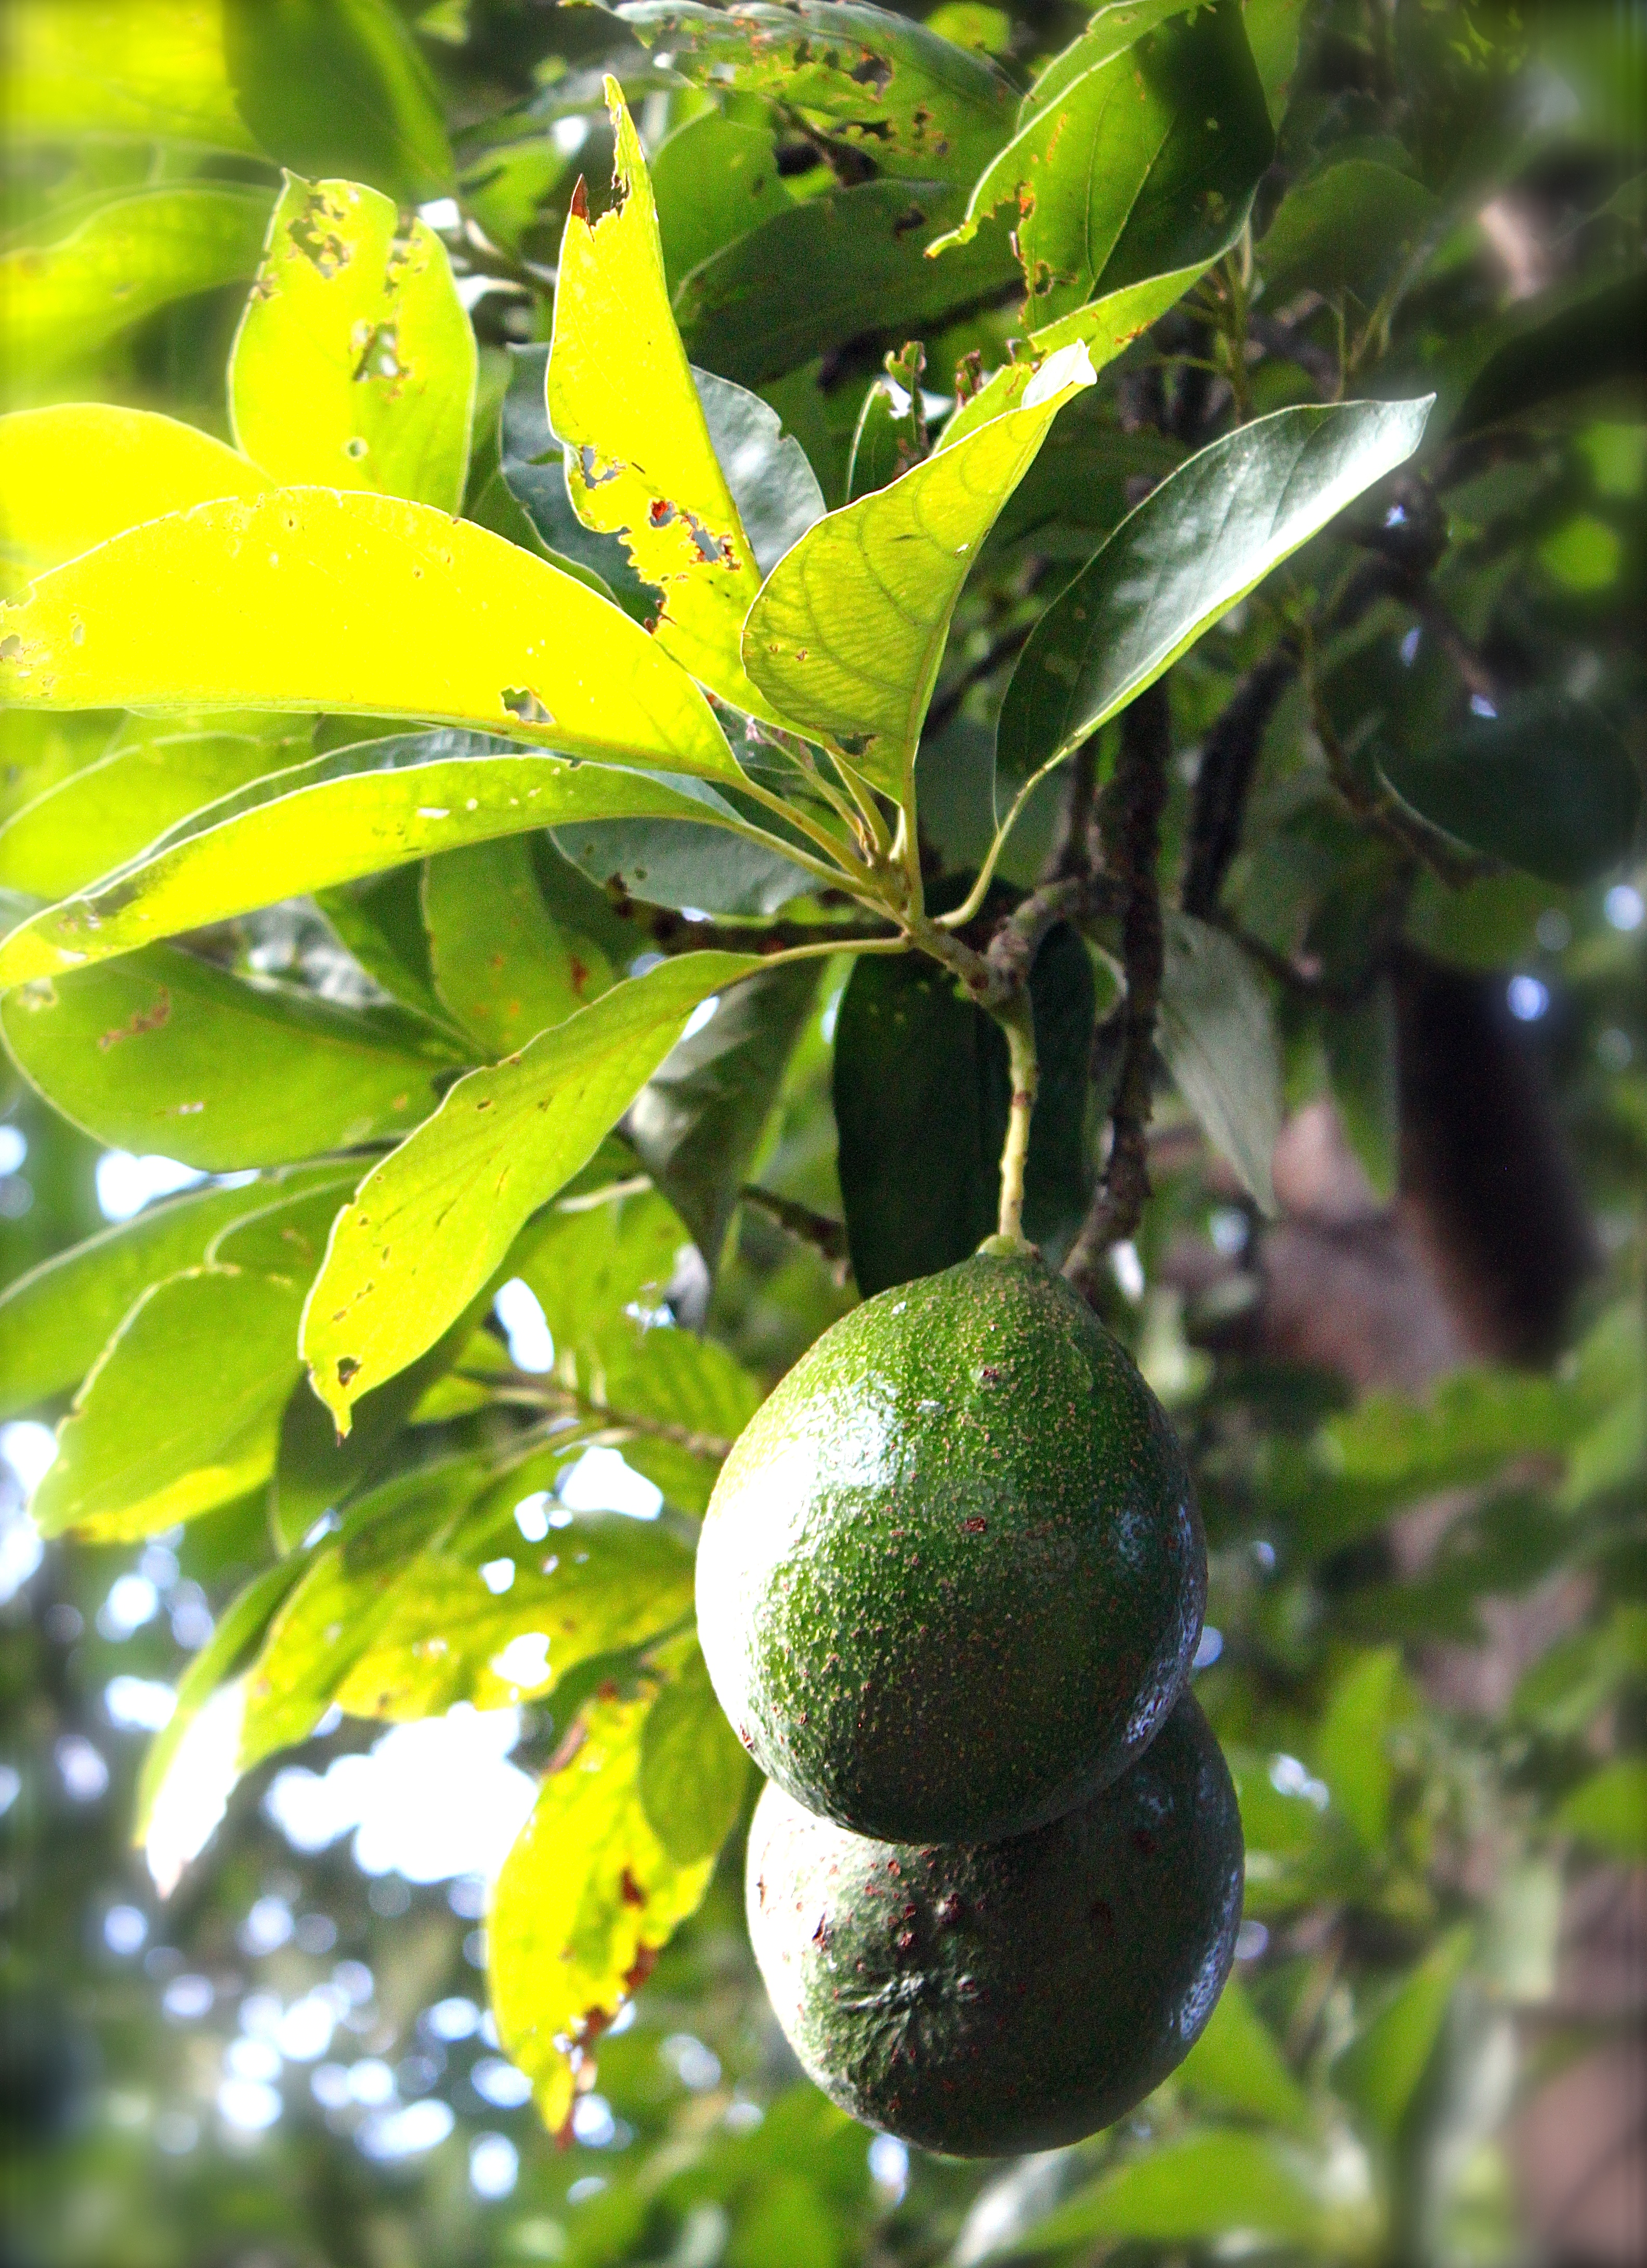 Our avocado tree has suddenly started producing in the last three years, which makes us very happy!